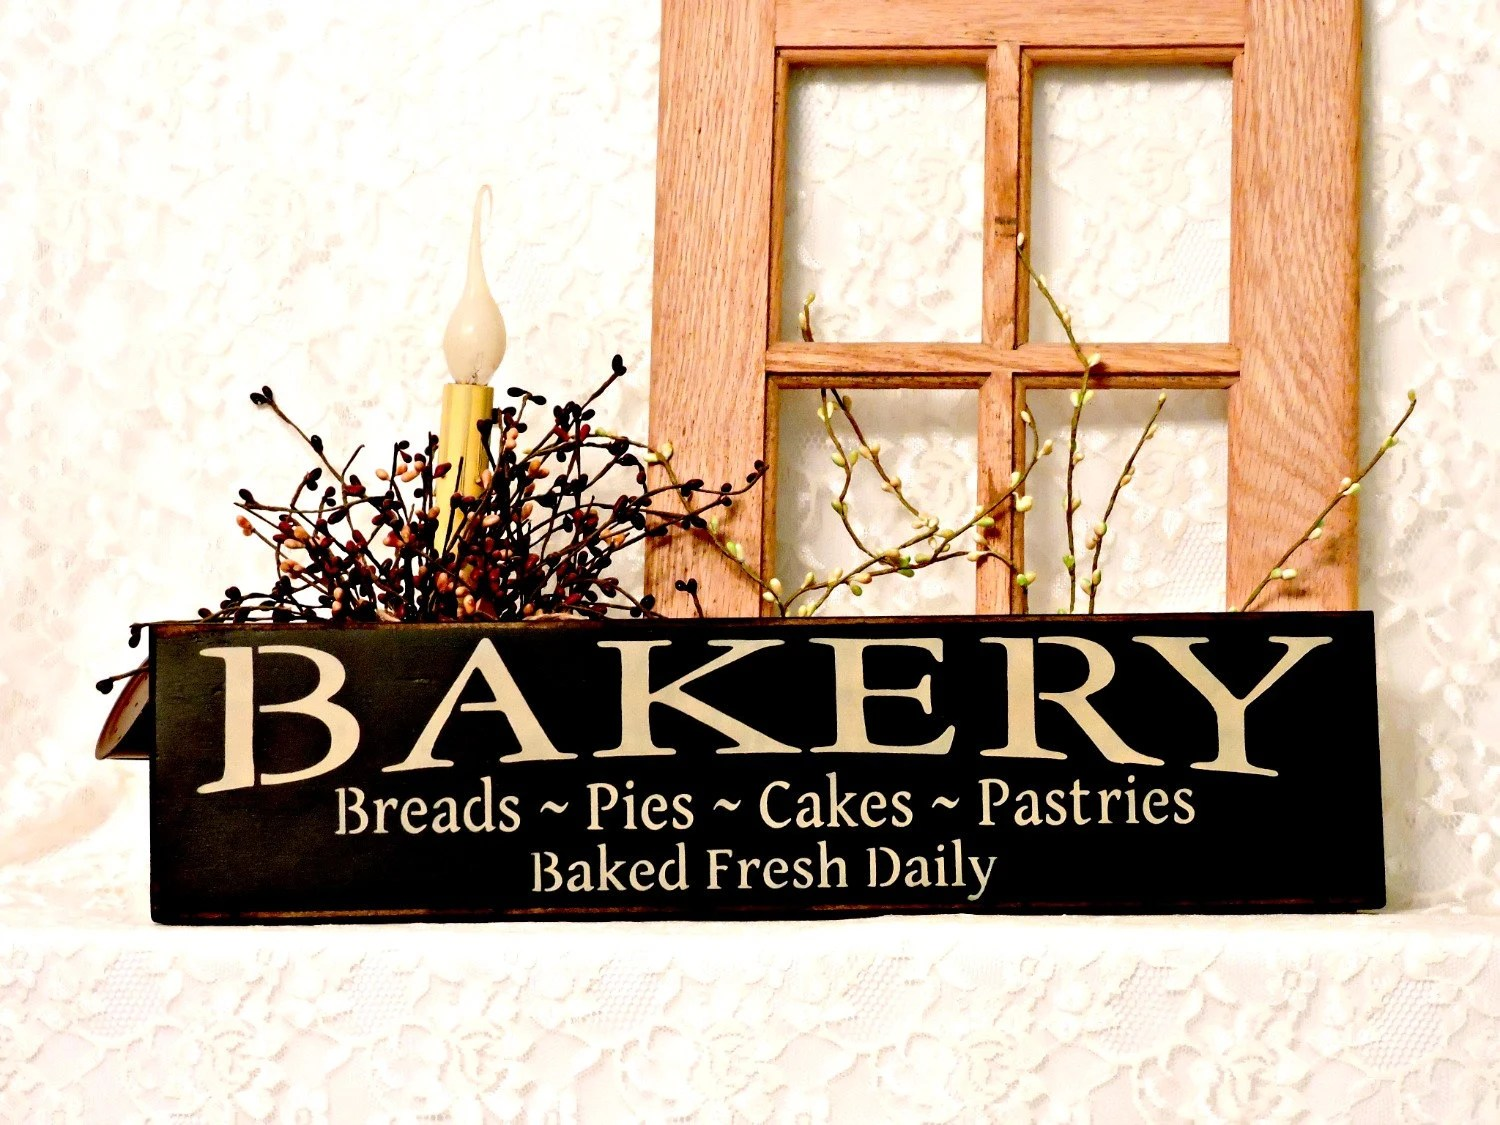 Bakery Breads Pies Cakes Pastries Baked Fresh Daily Sign